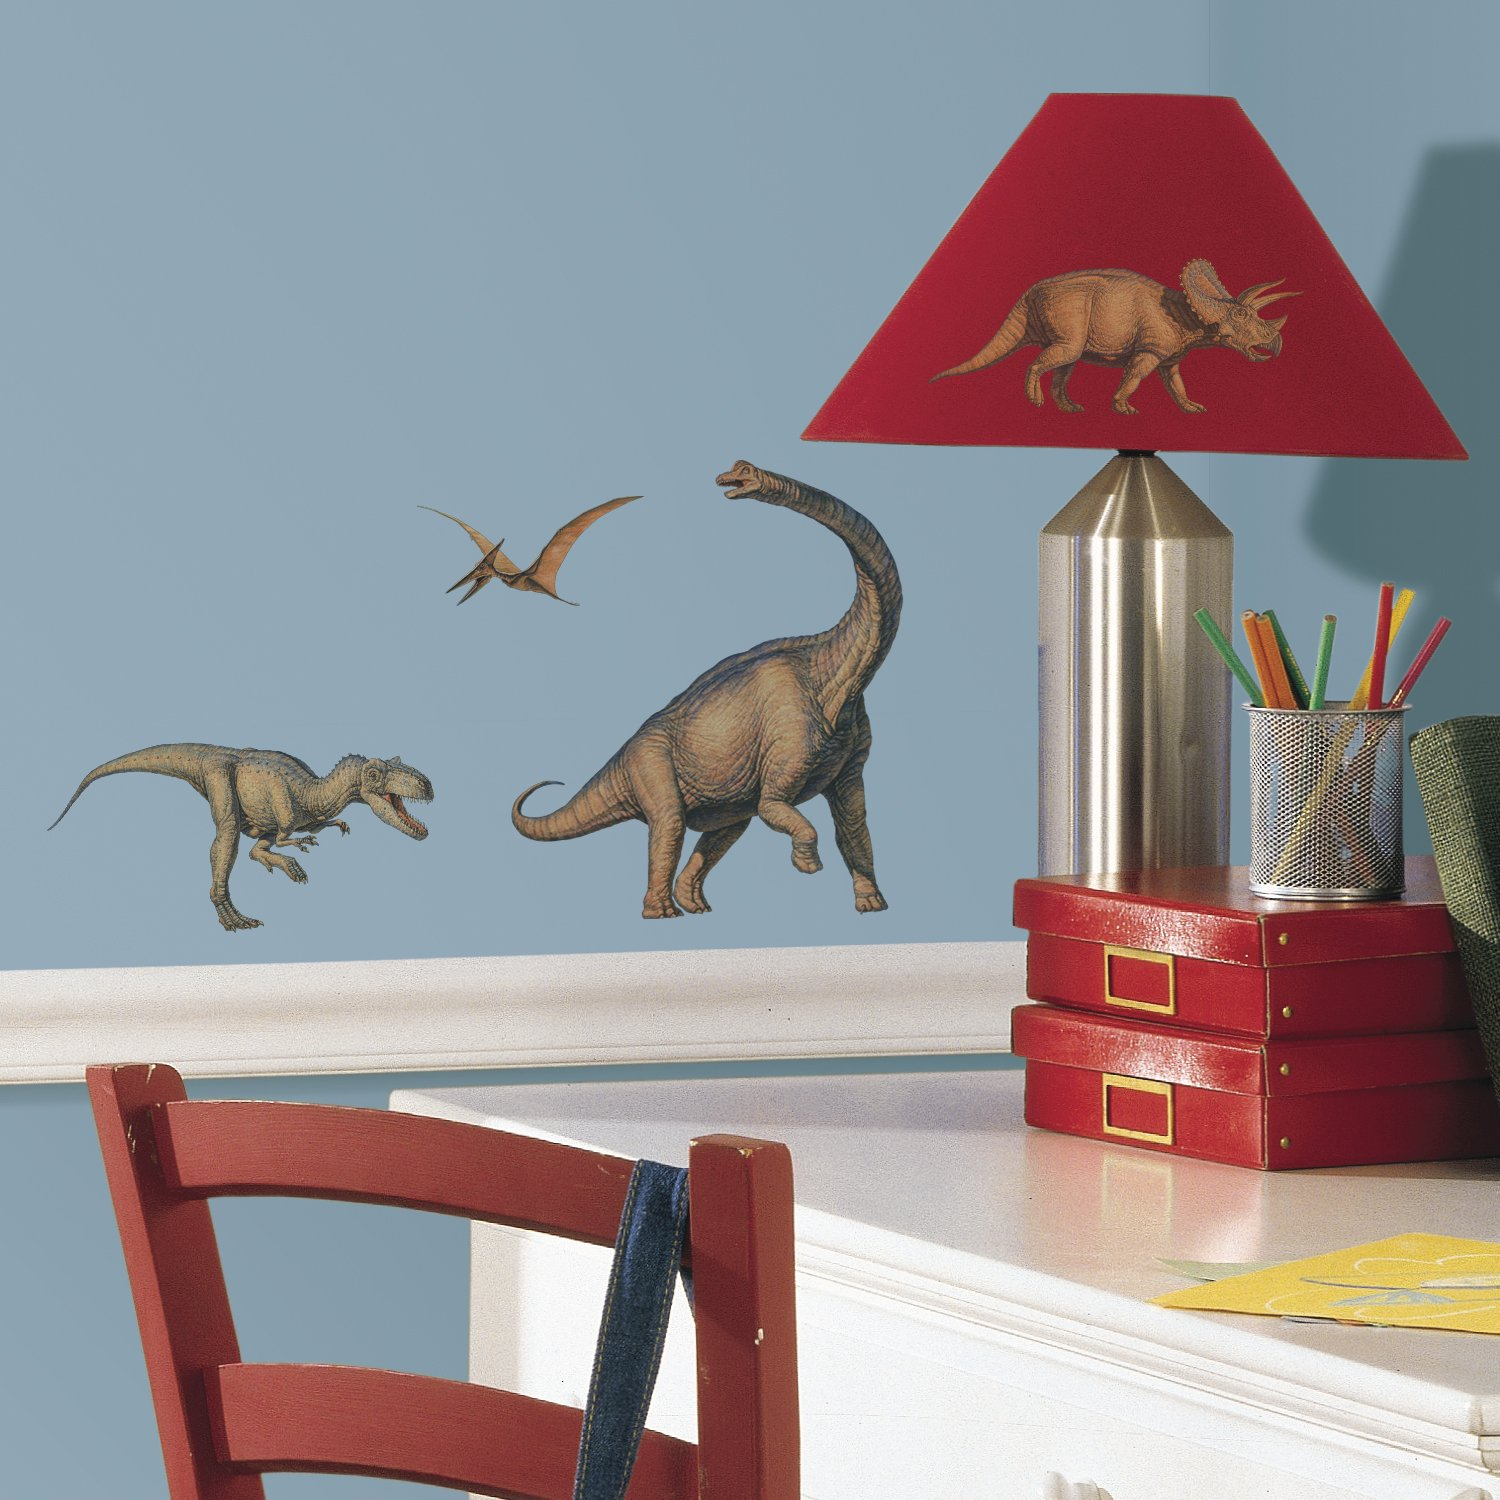 High Quality RoomMates Repositionable Childrens Wall Stickers   Dinosaurs: Amazon.co.uk:  Kitchen U0026 Home Part 9